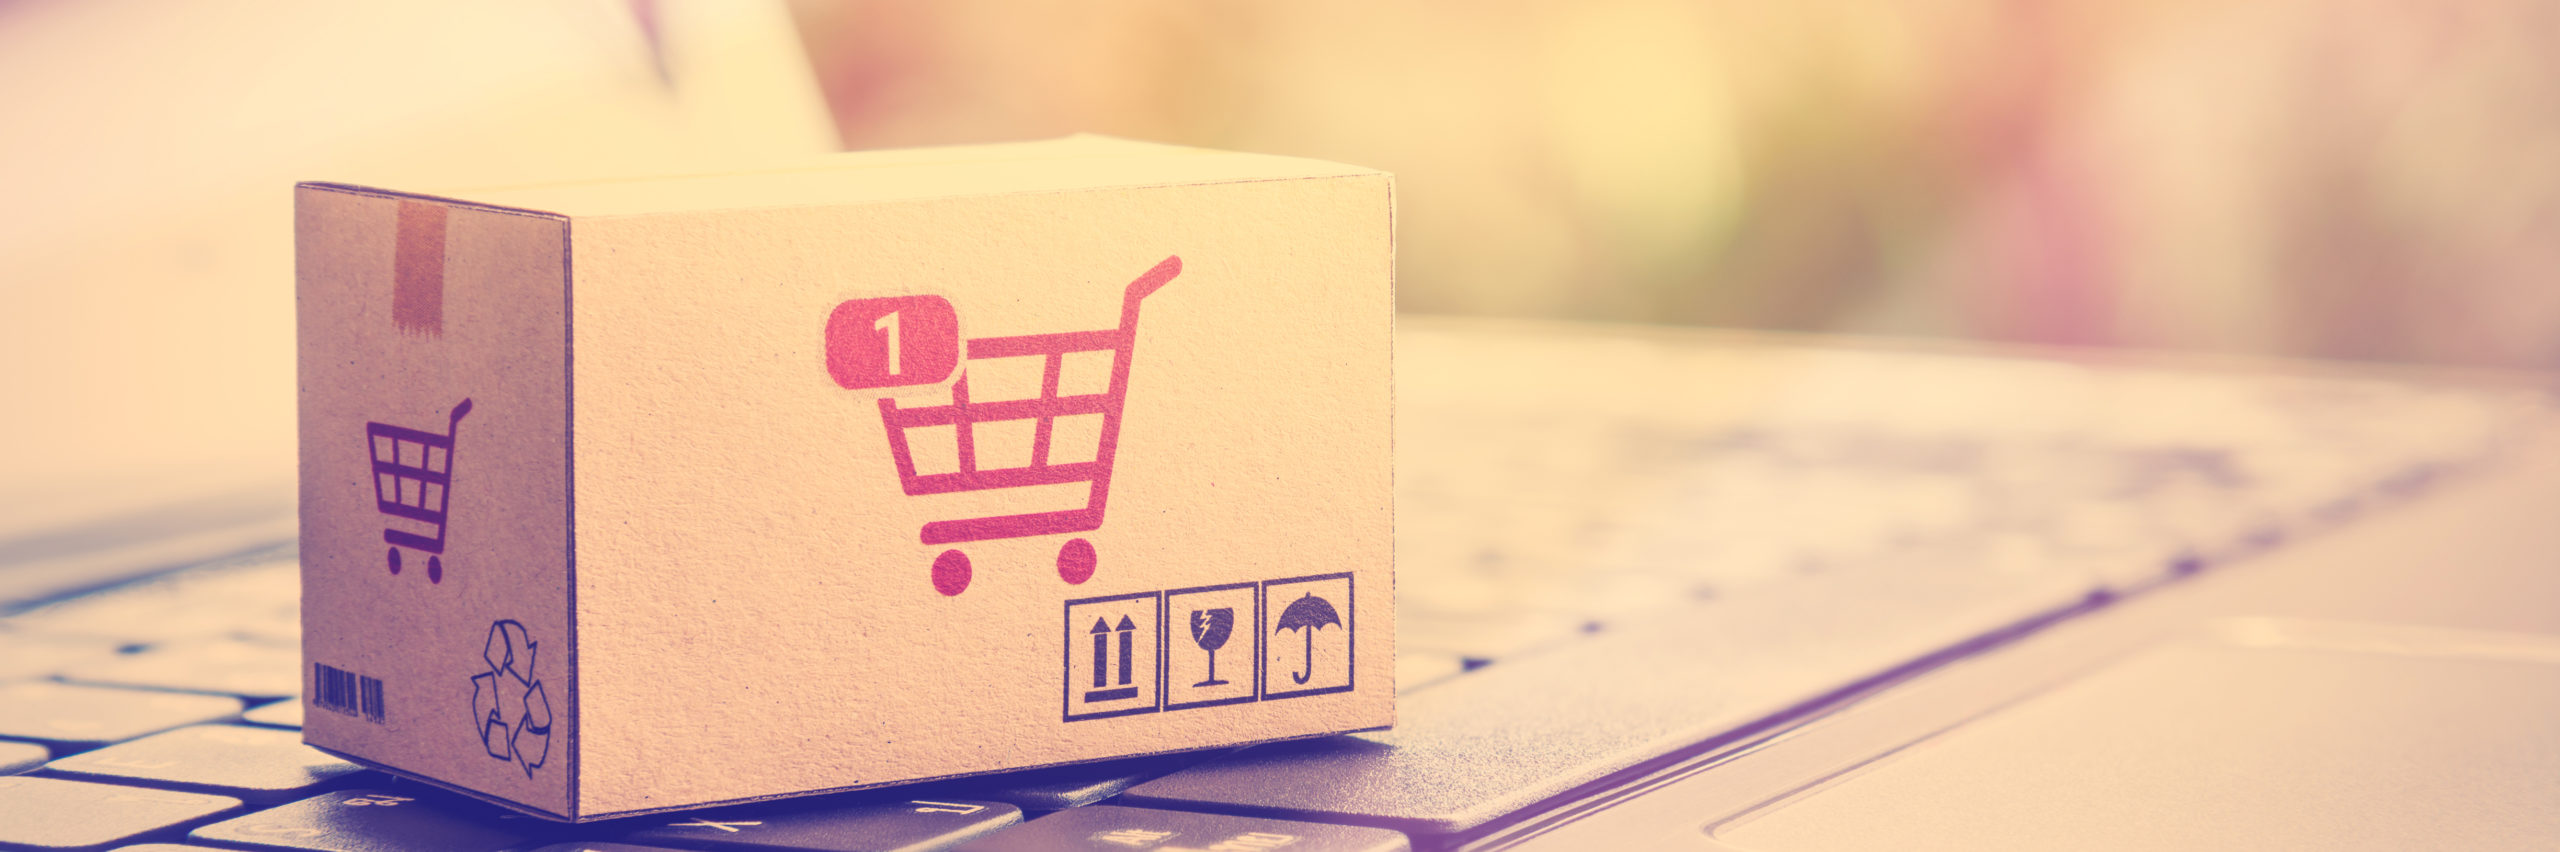 Online shopping / retail ecommerce and delivery service concept : Box with 1 item in a shopping cart sign on a laptop, depicts consumers purchase or order products from suppliers or digital stores. - Image